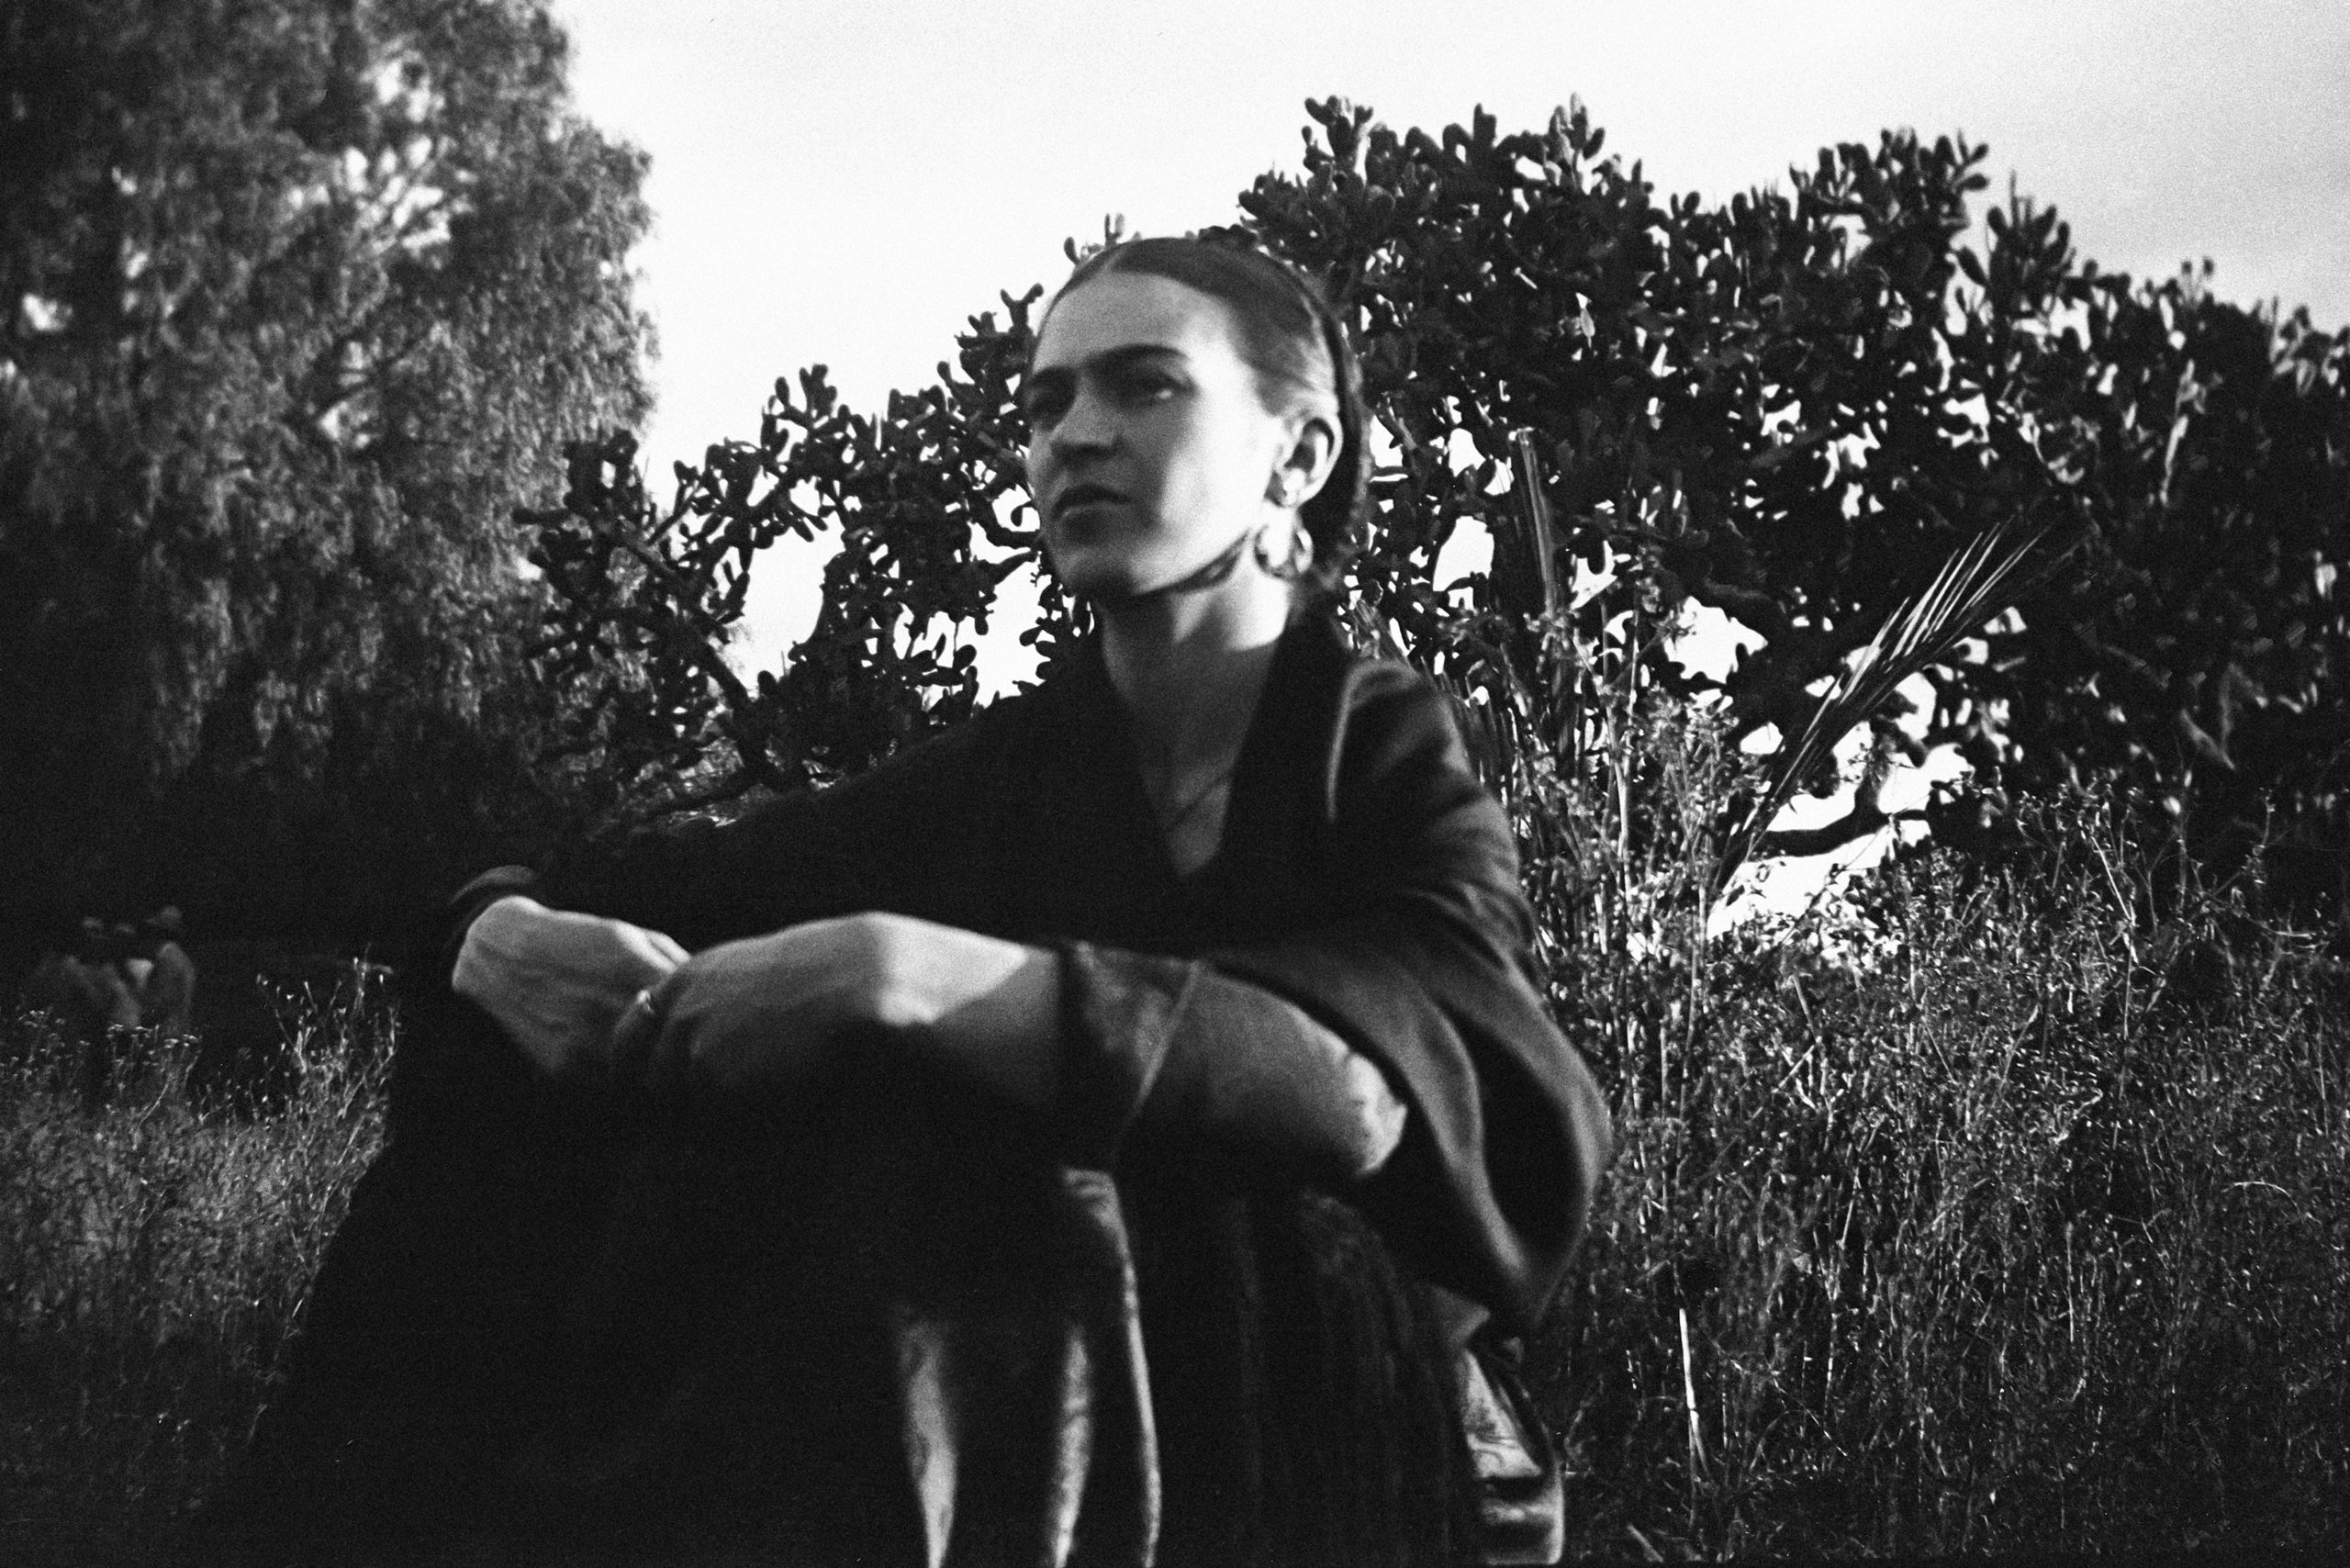 Frida by the Cactus, Mexico, 1932 (©LUCIENNE BLOCH, COURTESY GALERIE DE L'INSTANT, PARIS)